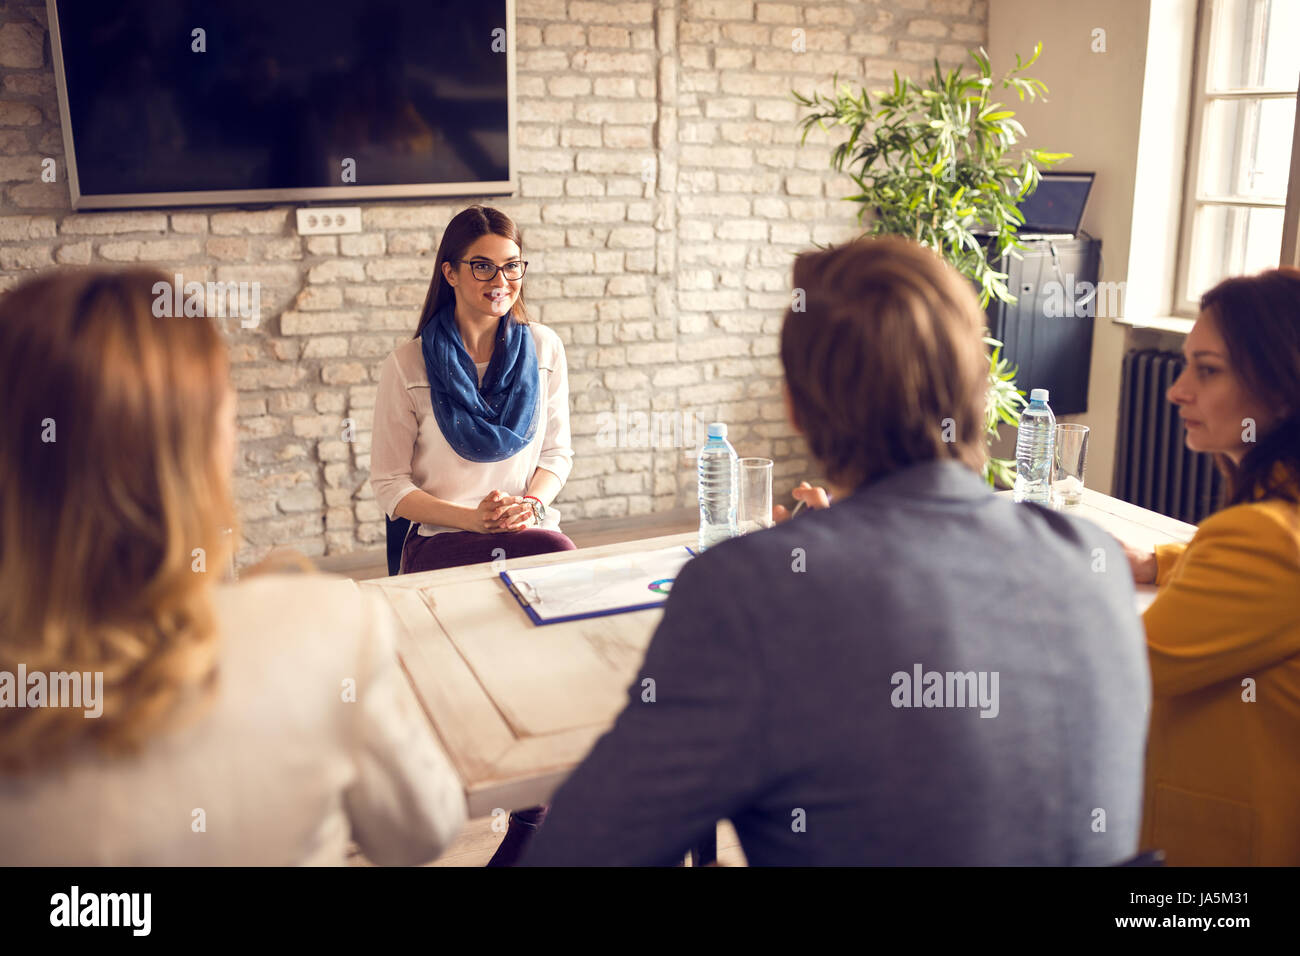 Young female on job interview with commission - Stock Image